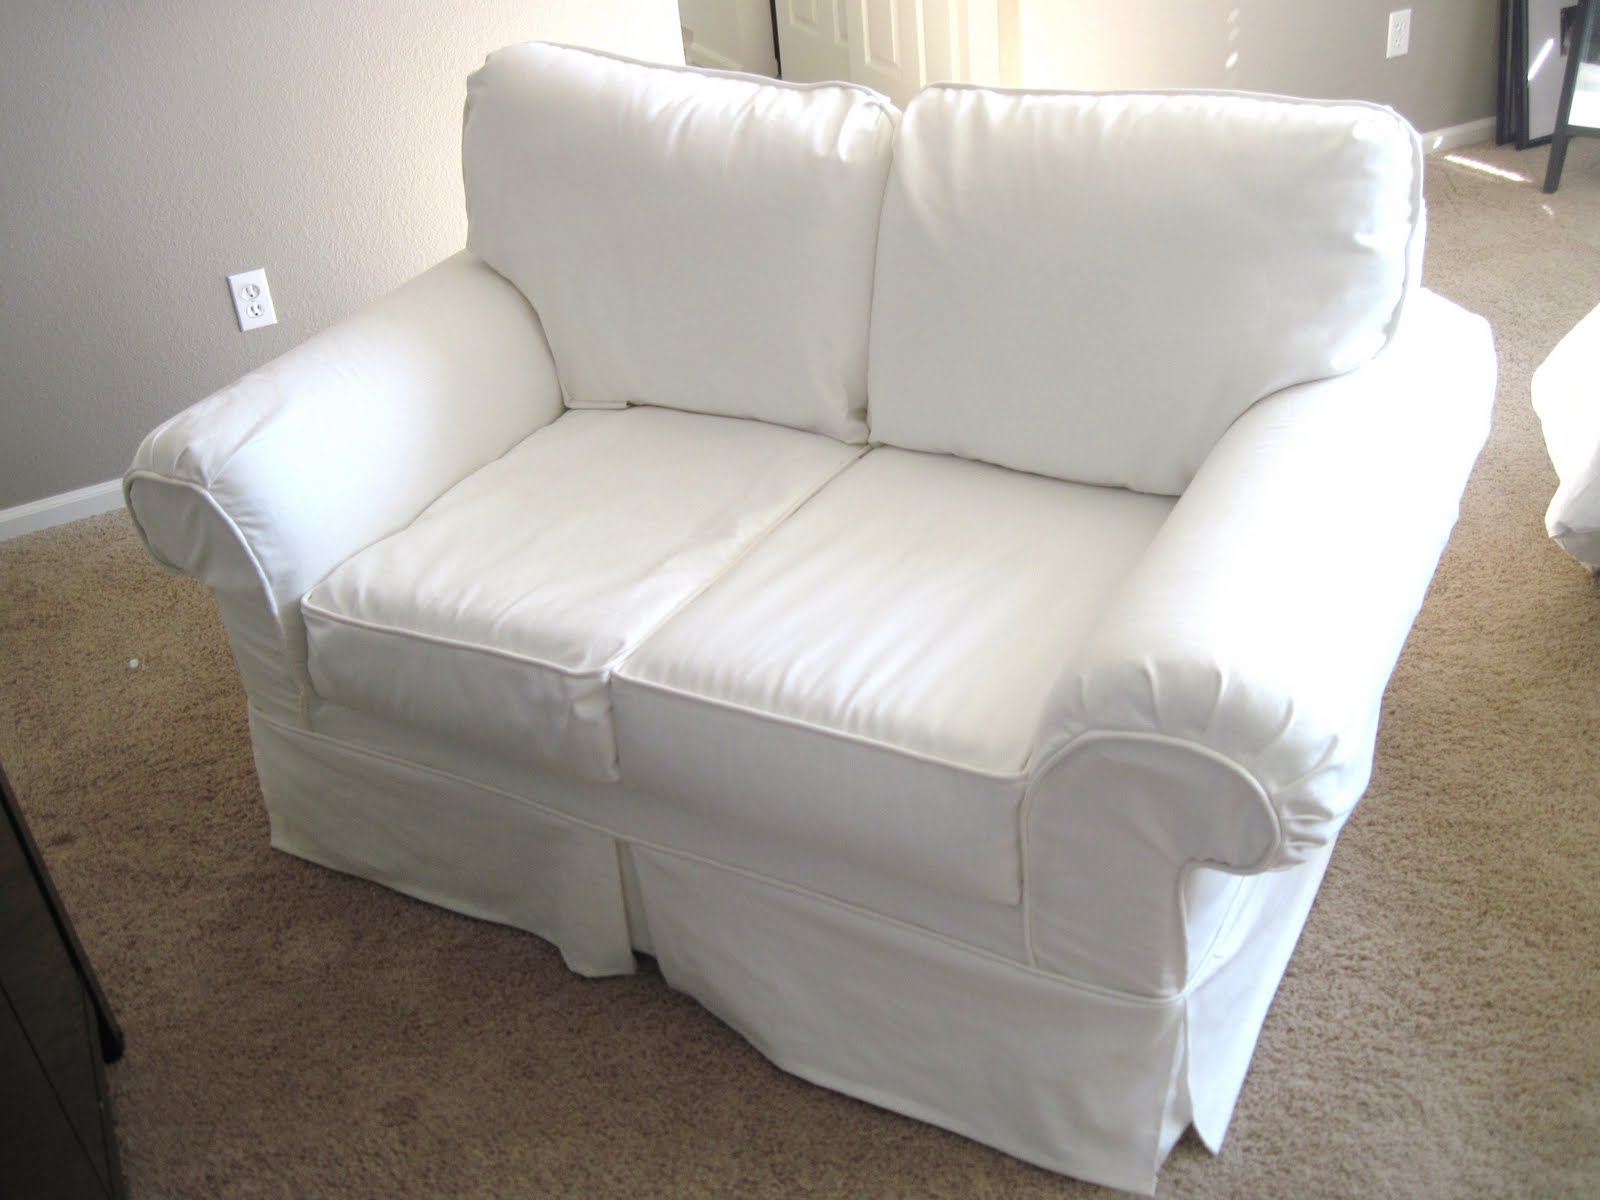 How To Make Sofa Covers Large Square Sectional A Couch Slipcover Easy Home Improvement